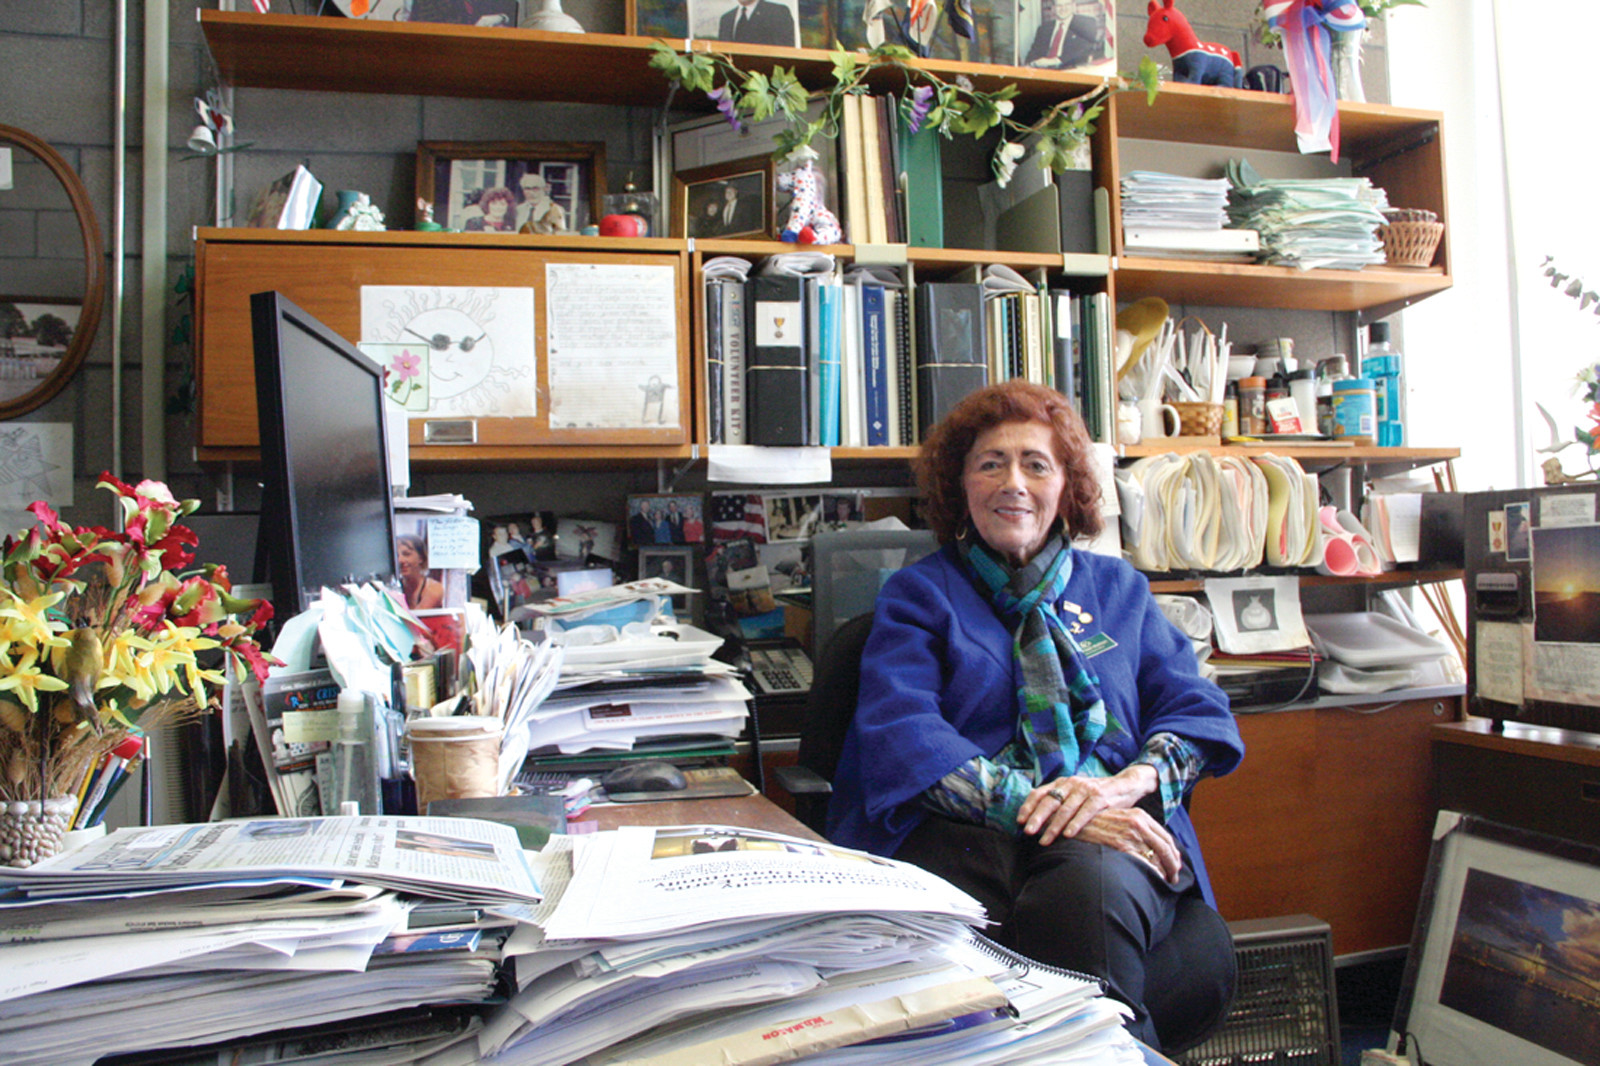 OFFICE FULL OF MEMORIES: Edna O'Neill Mattson is seen in her CCRI office that is filled with photographs and mementoes from her many years of community and political involvement.